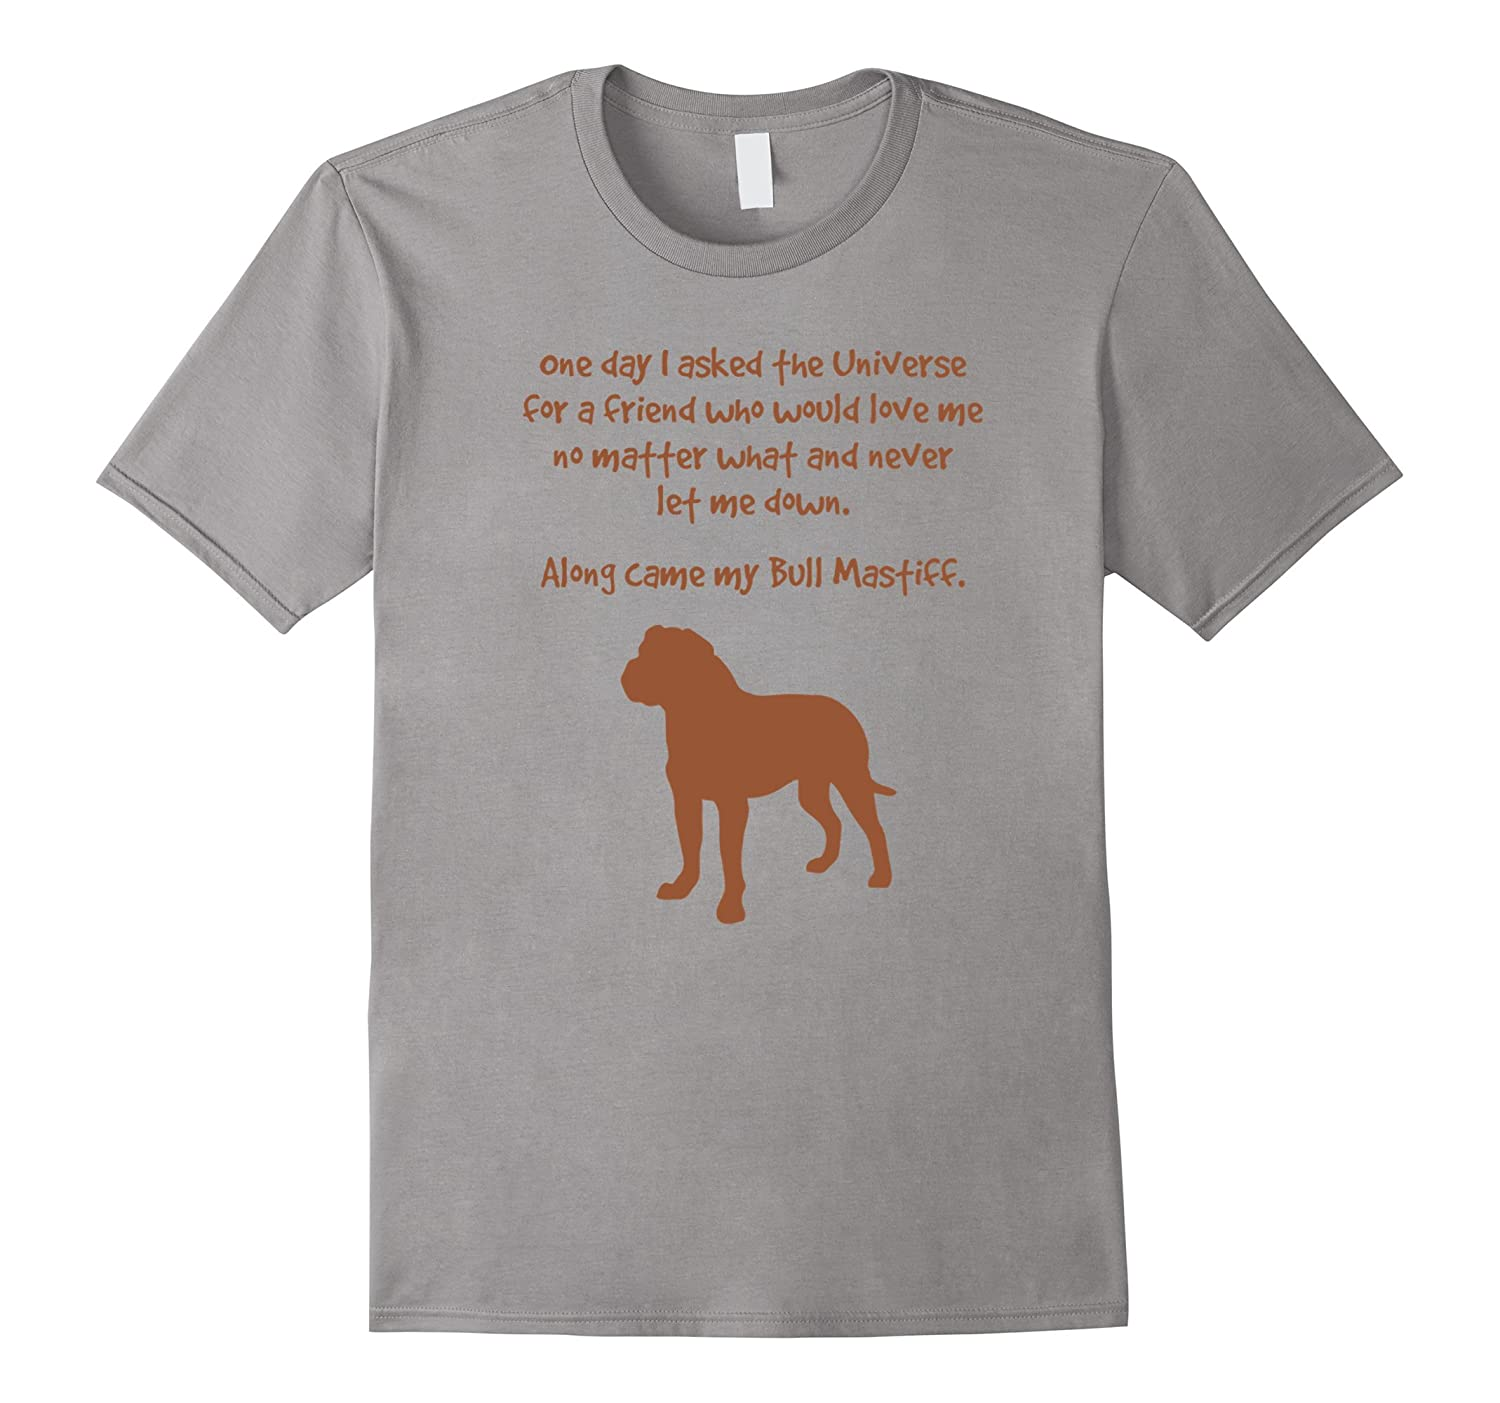 Along Came My Bull Mastiff Inspirational Dog Lovers T-Shirt-TH